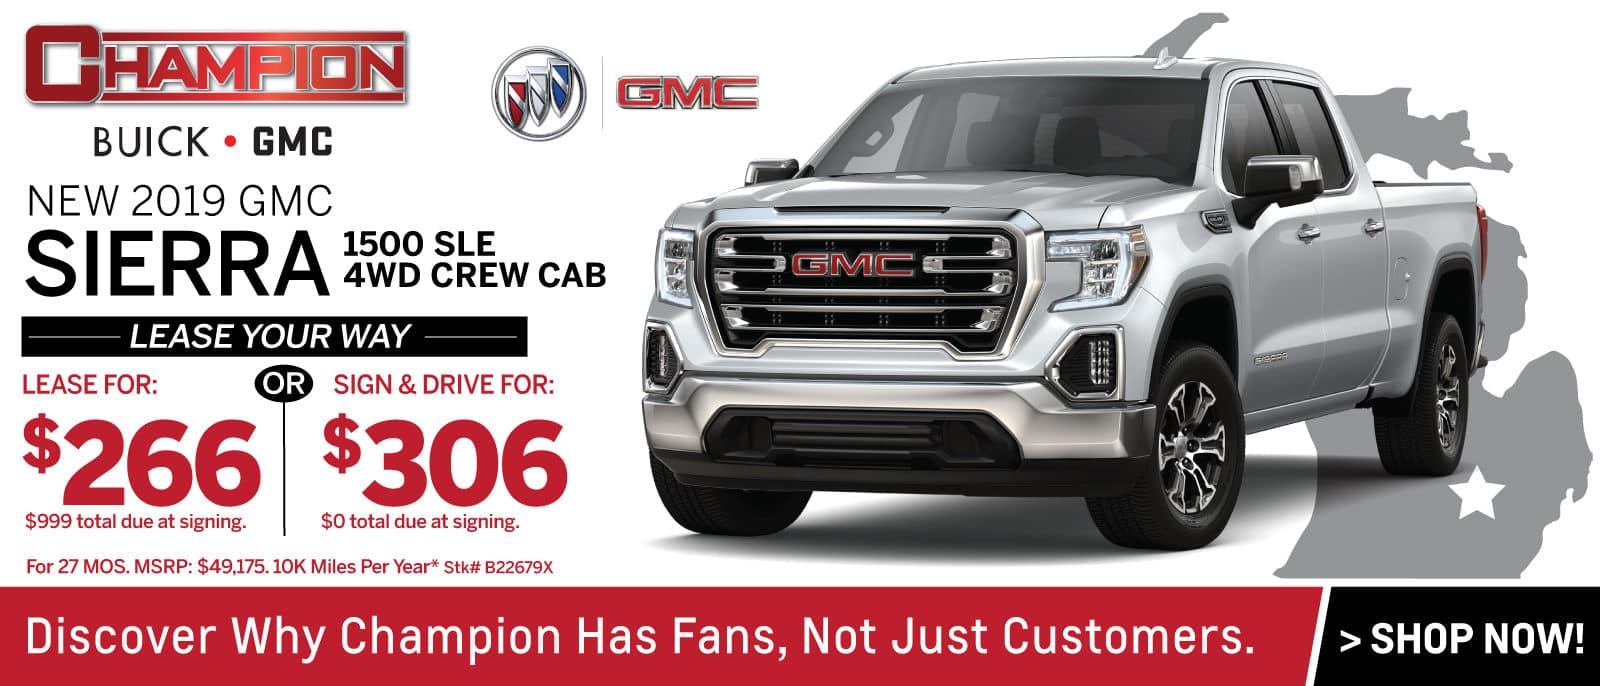 Champion GMC Buick in Brighton, MI | New and Used Cars